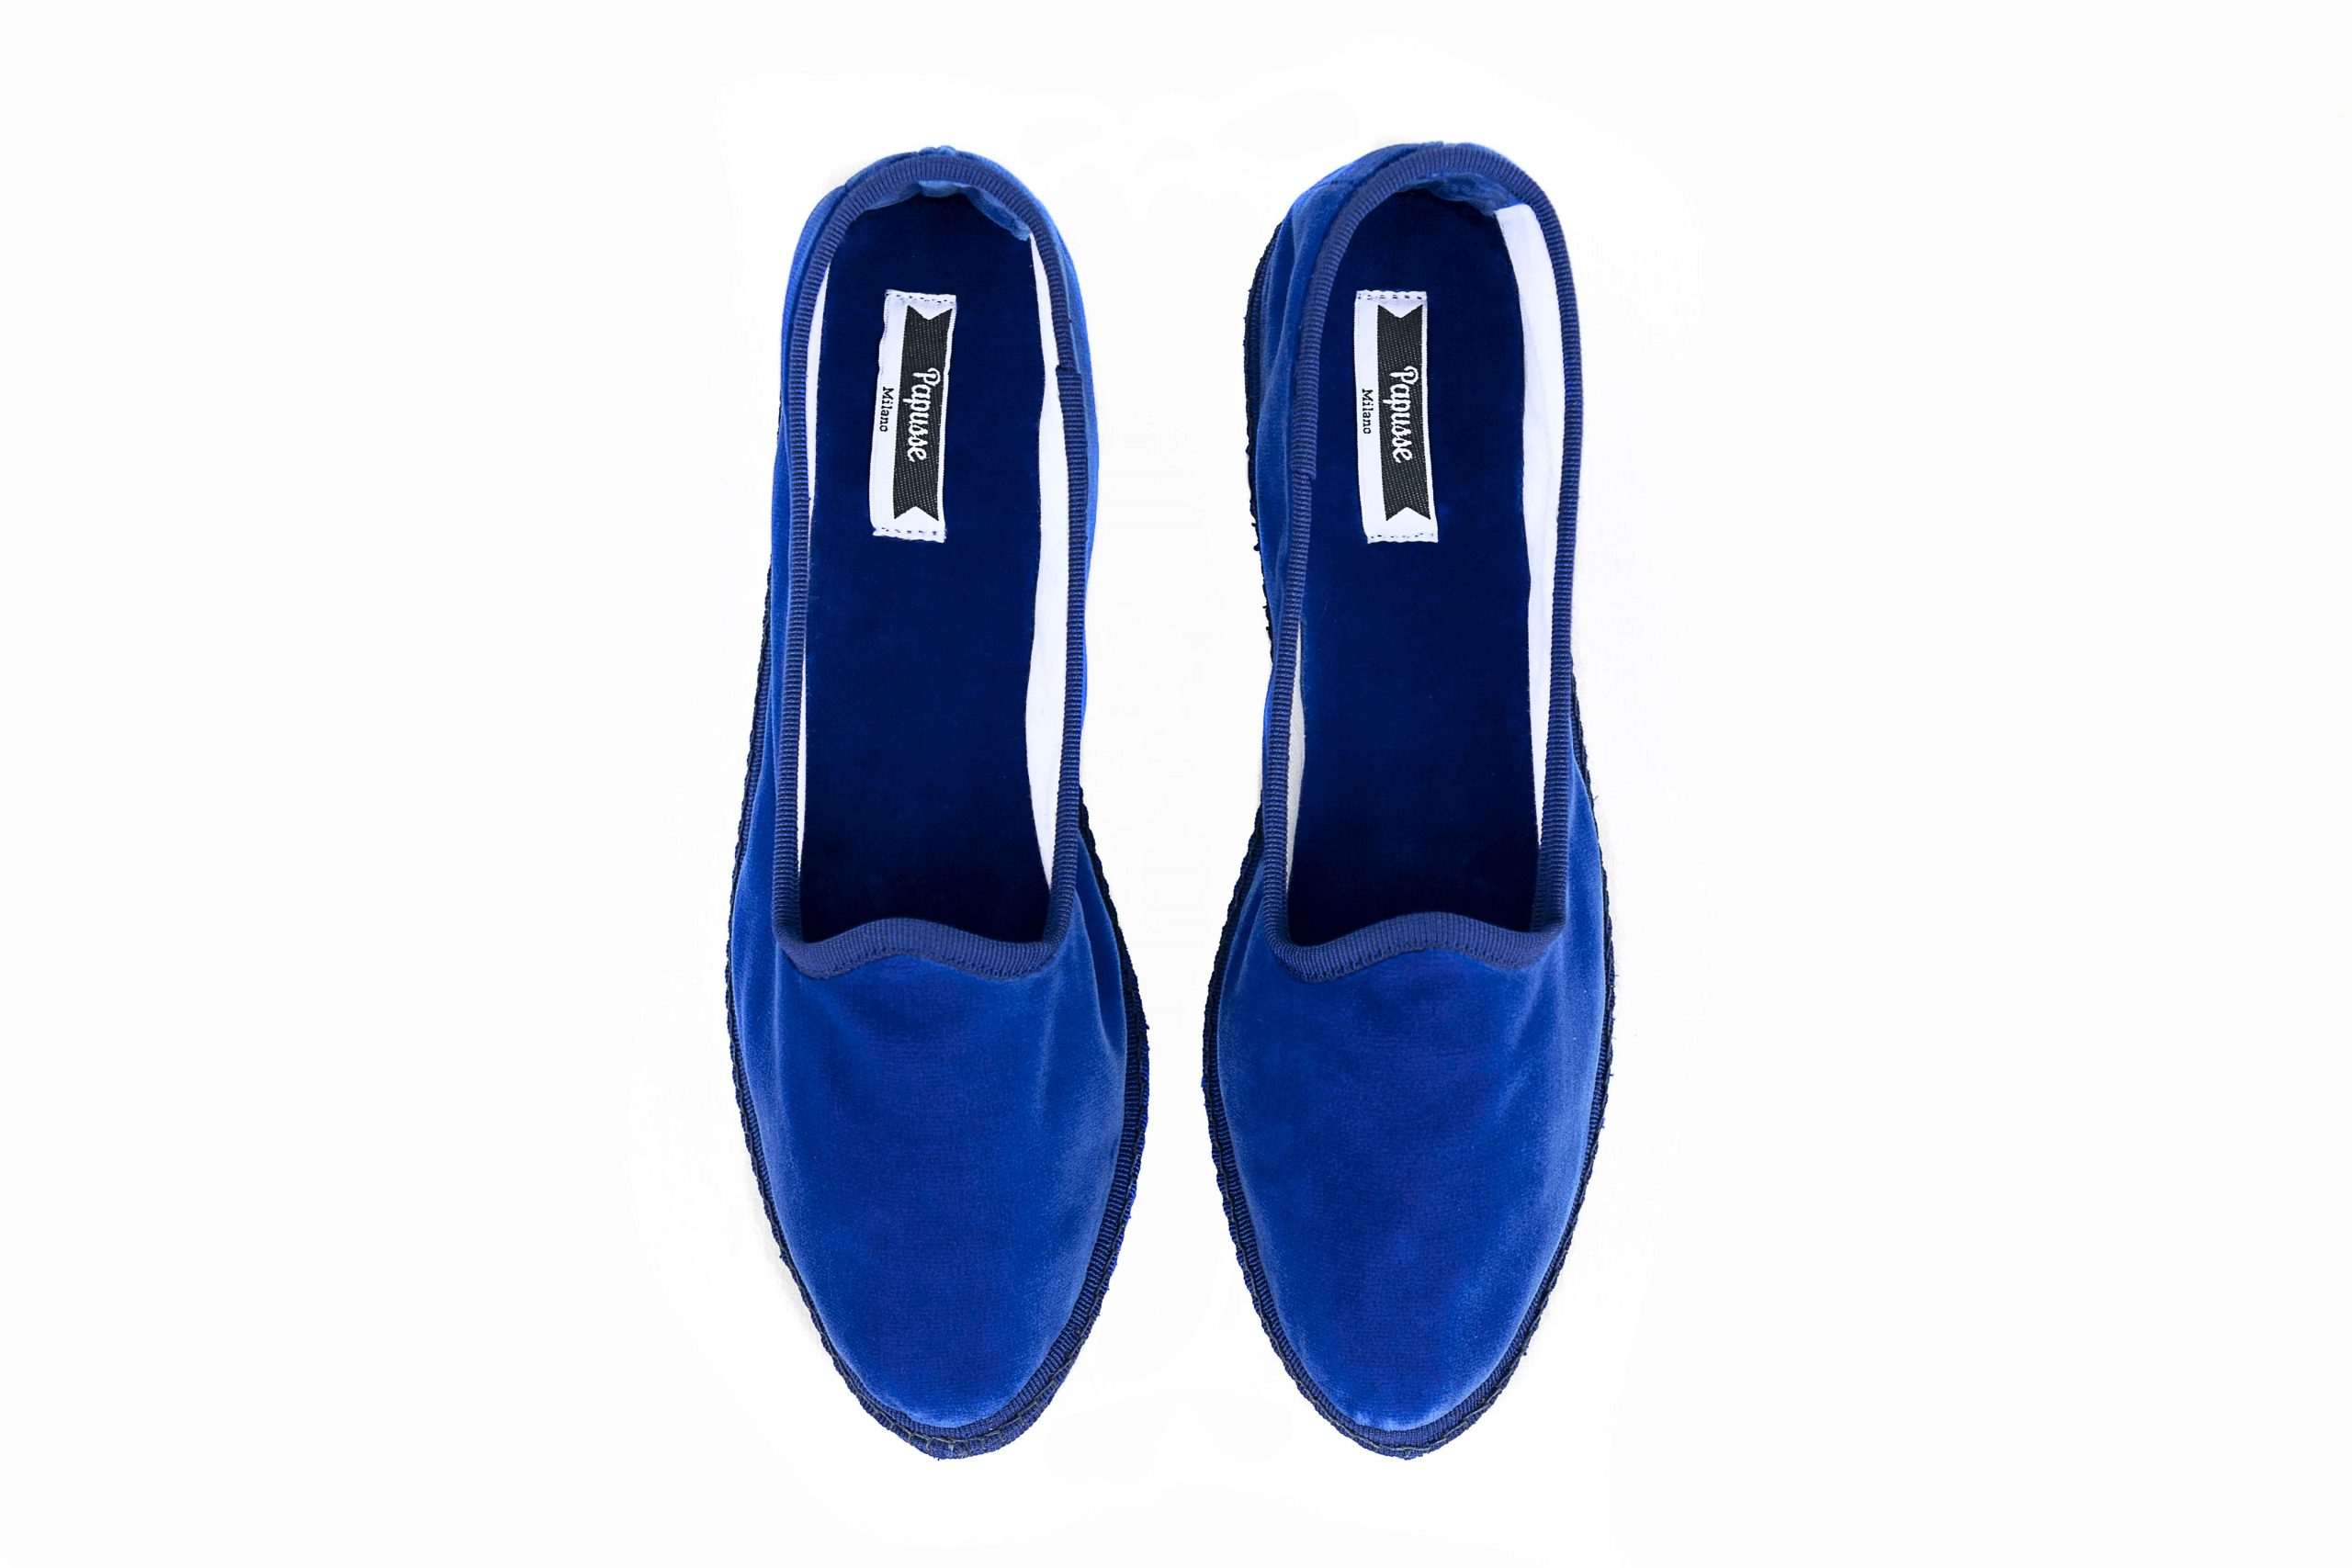 slippers_Elettra_top